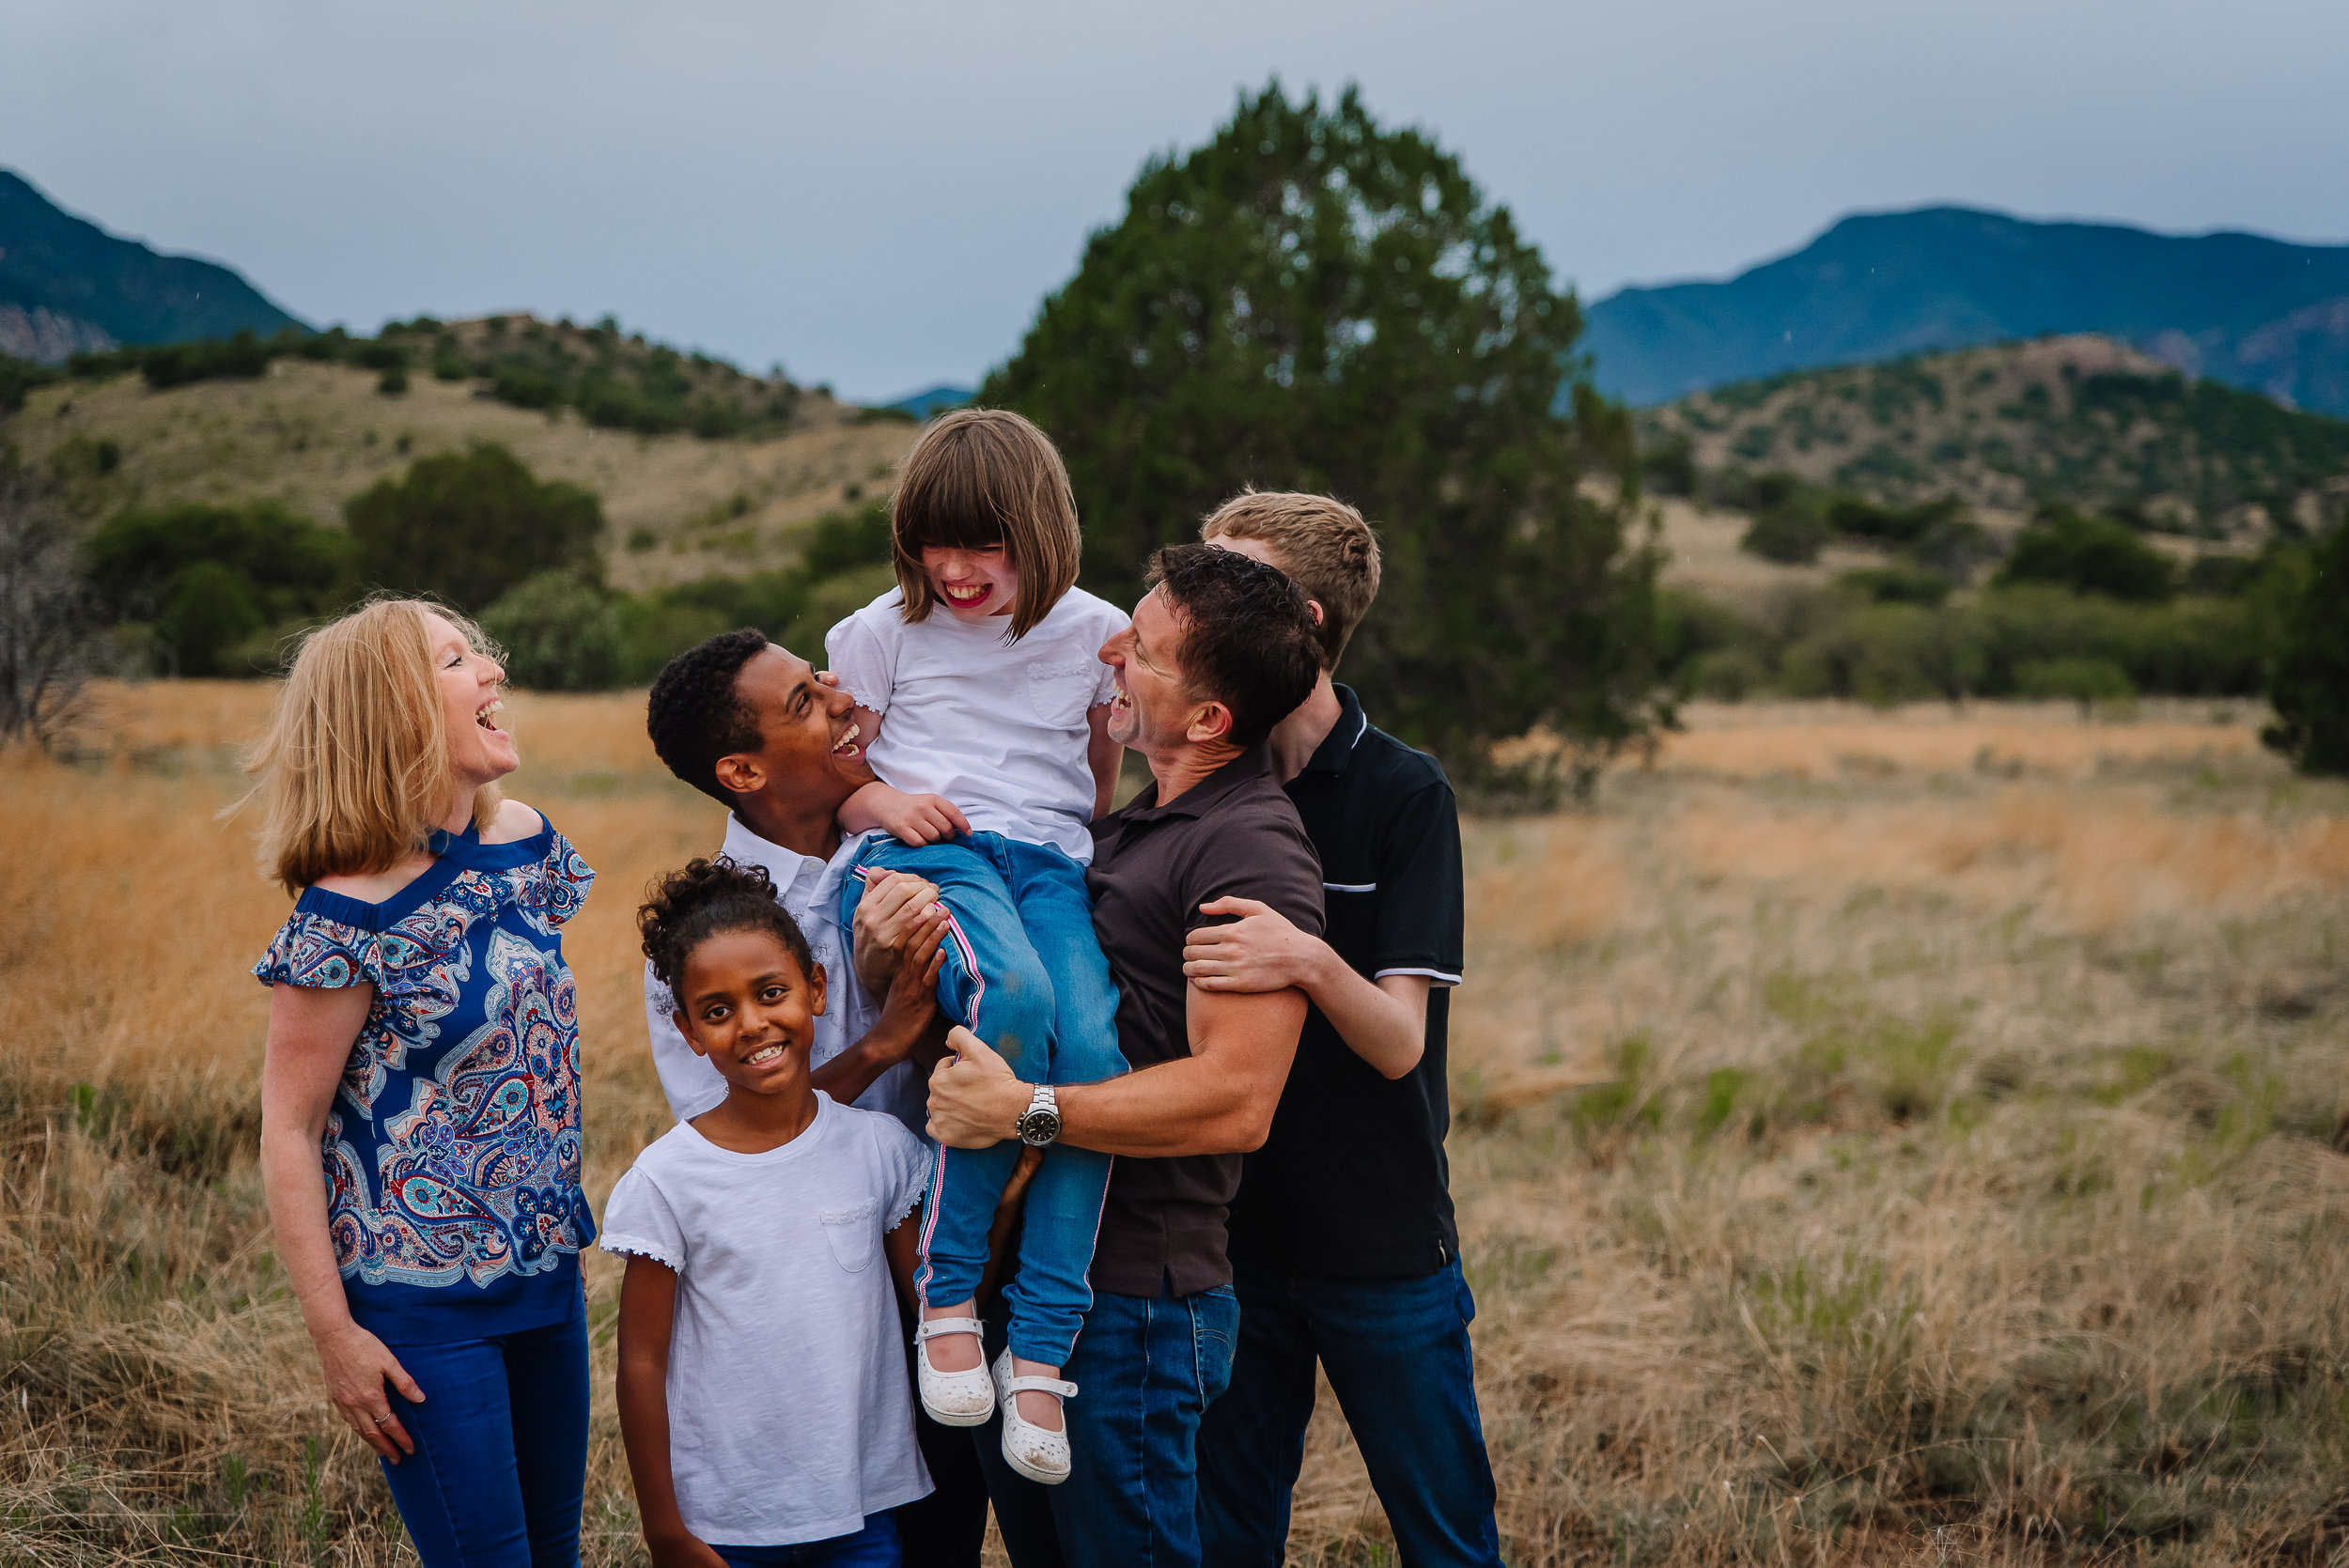 Craig + Nuala - For years my family and I have been visiting Arizona and have always wanted to have family portraits taken. This year after seeing wedding photos taken by Hannah, we knew that Hannah was the one for the job. Hannah directed us to a beautiful location and captured moments that our family will treasure forever. Hannah is such a delight to work with, especially with children. We are so delighted with our photos and the special moments in time that Hannah has captured. Thank you so much Hannah for creating memories that we will forever treasure.